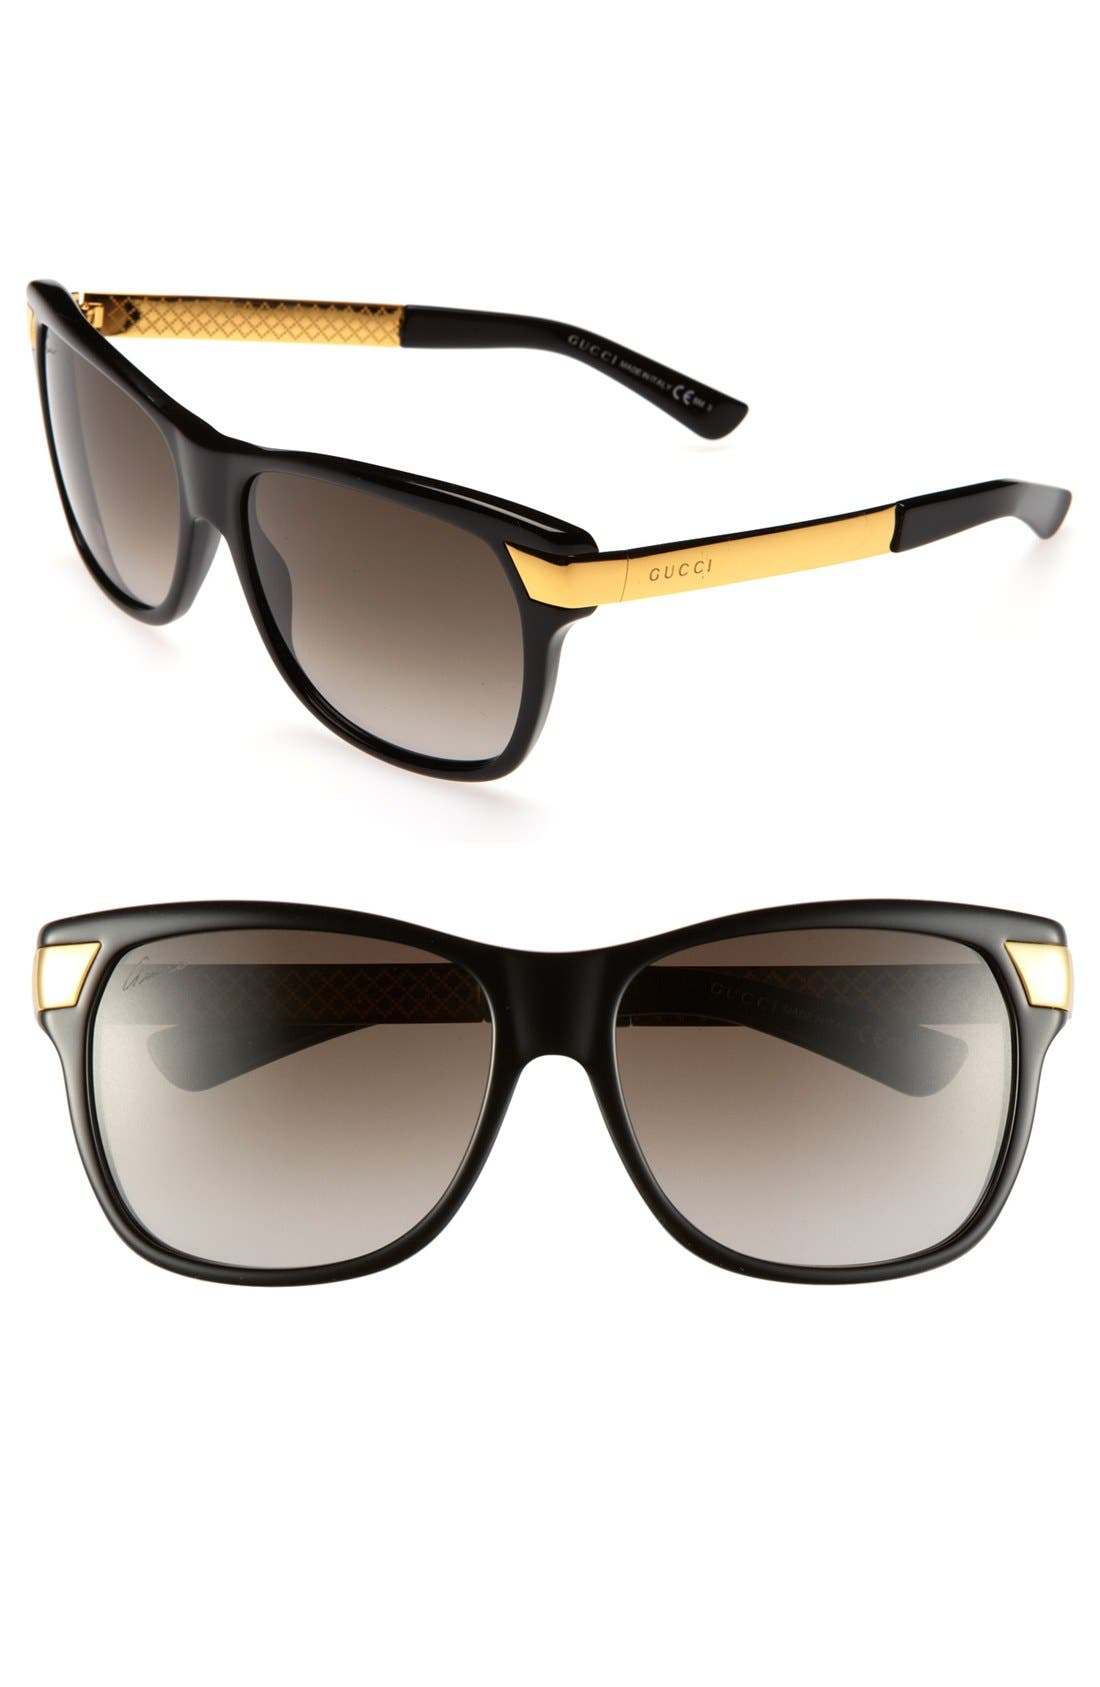 Main Image - Gucci 57mm Sunglasses